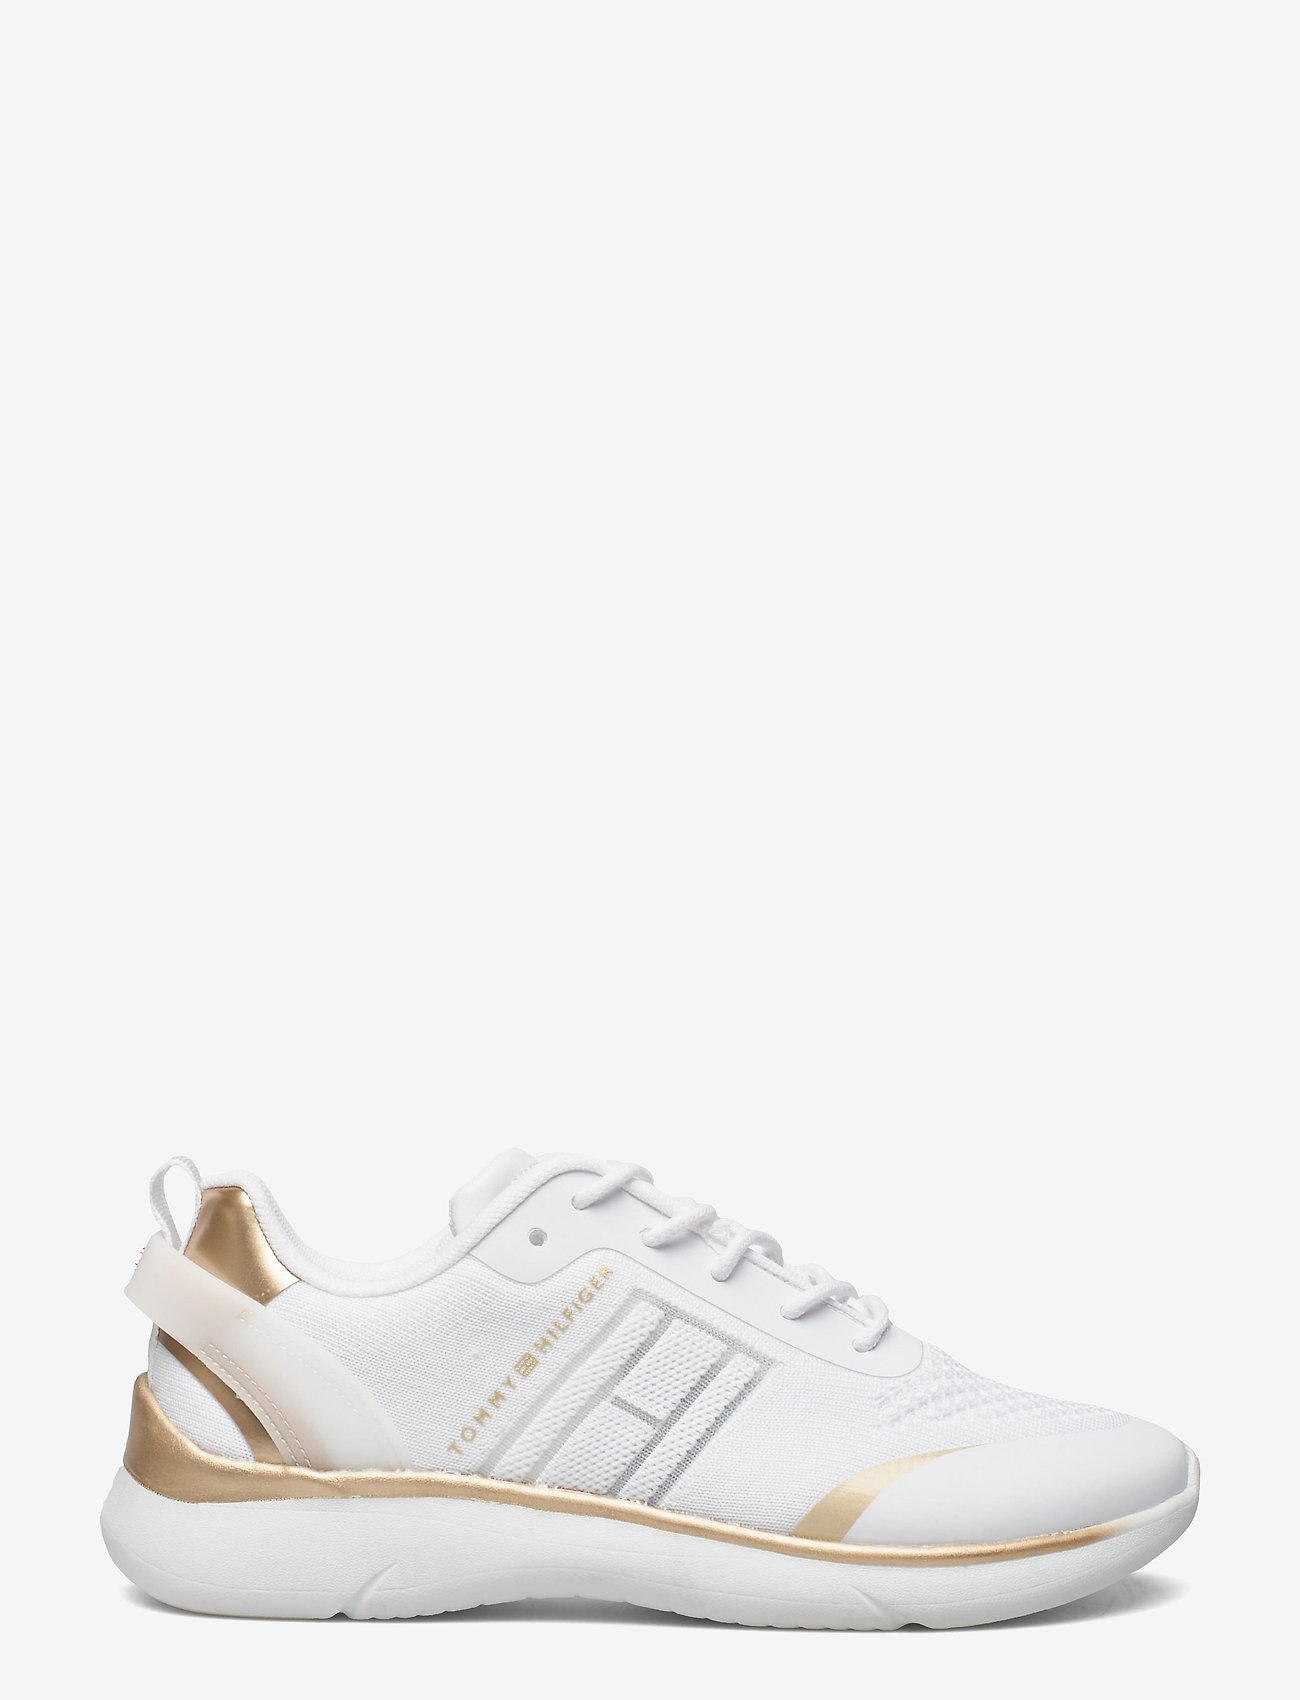 Tommy Hilfiger - KNITTED LIGHT SNEAKER - low top sneakers - white - 1